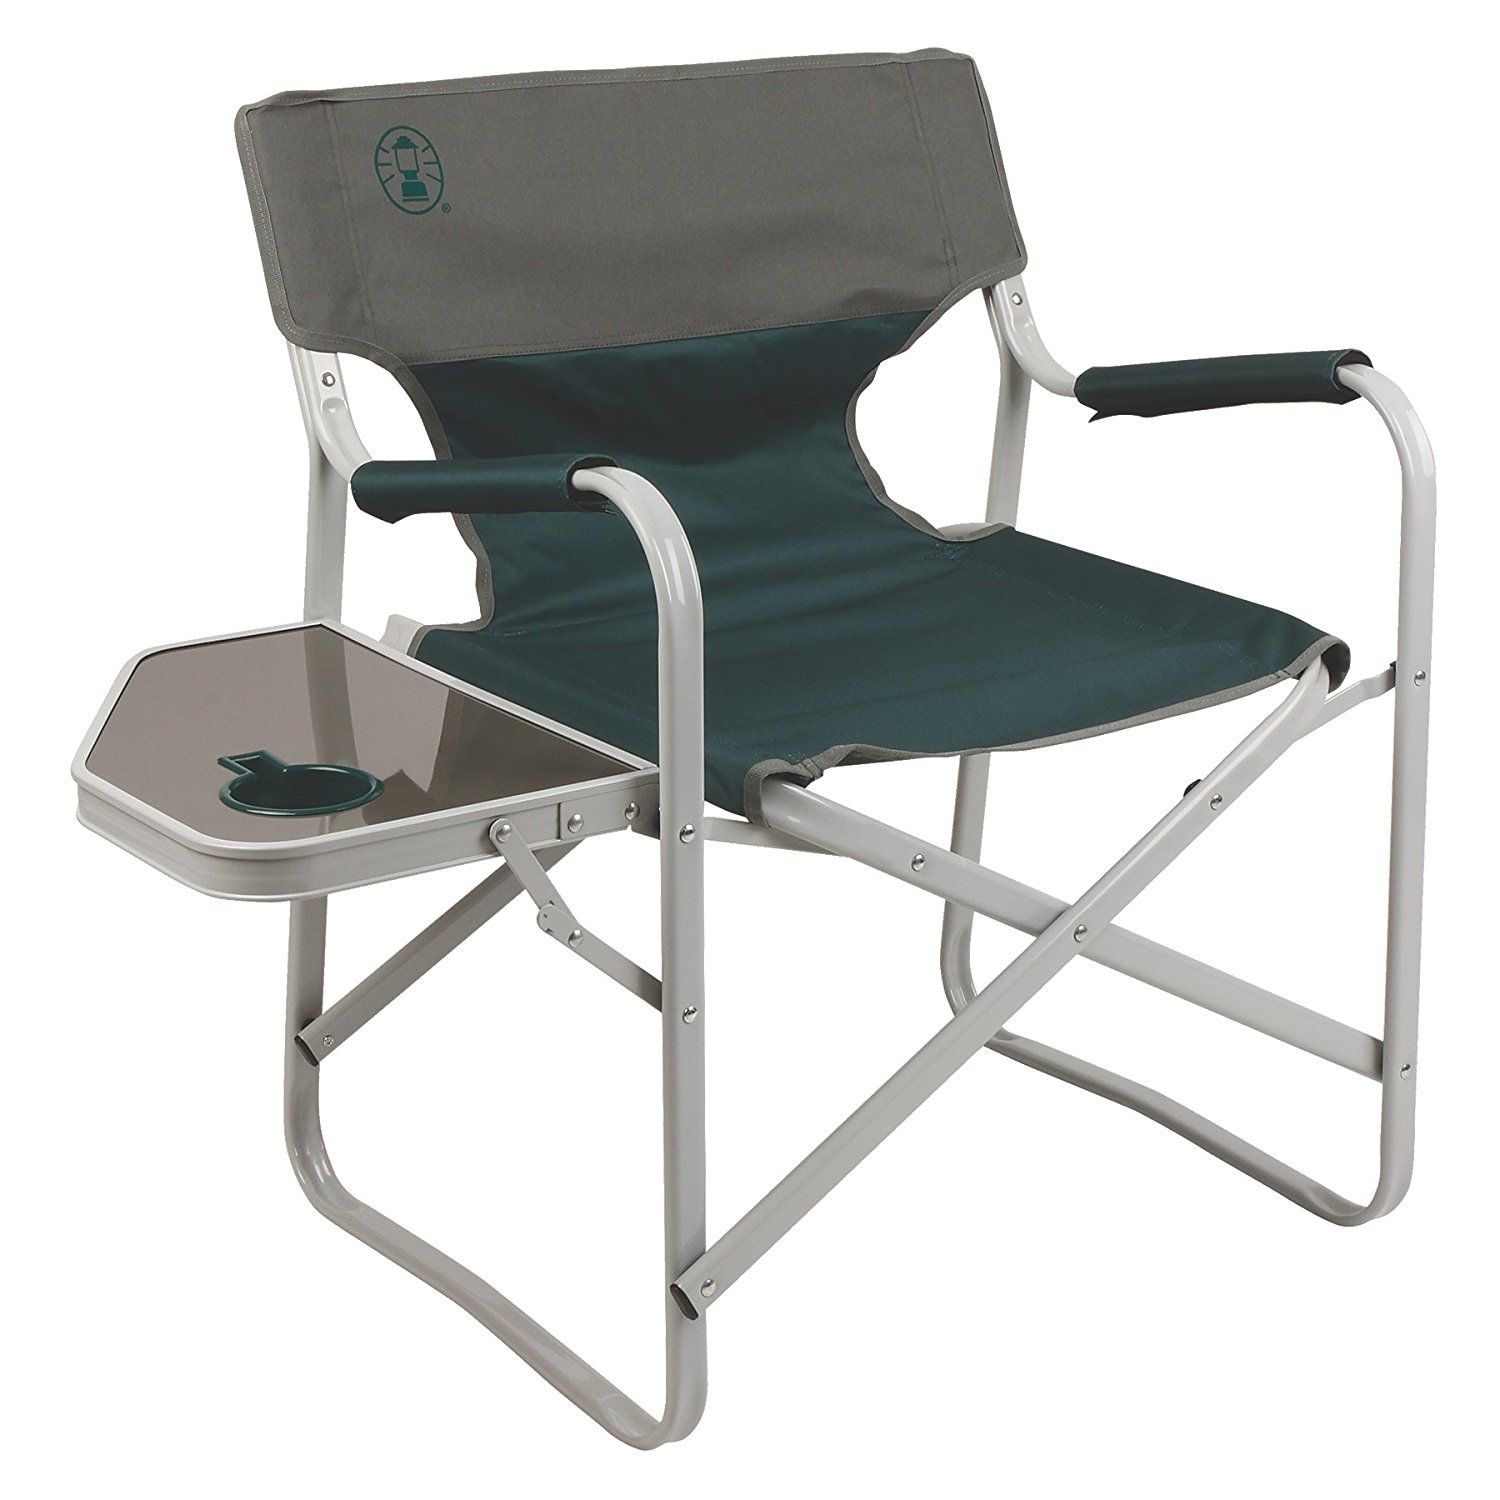 Coleman Outpost Breeze Portable Folding Deck Chair with Side Table by COLEMAN